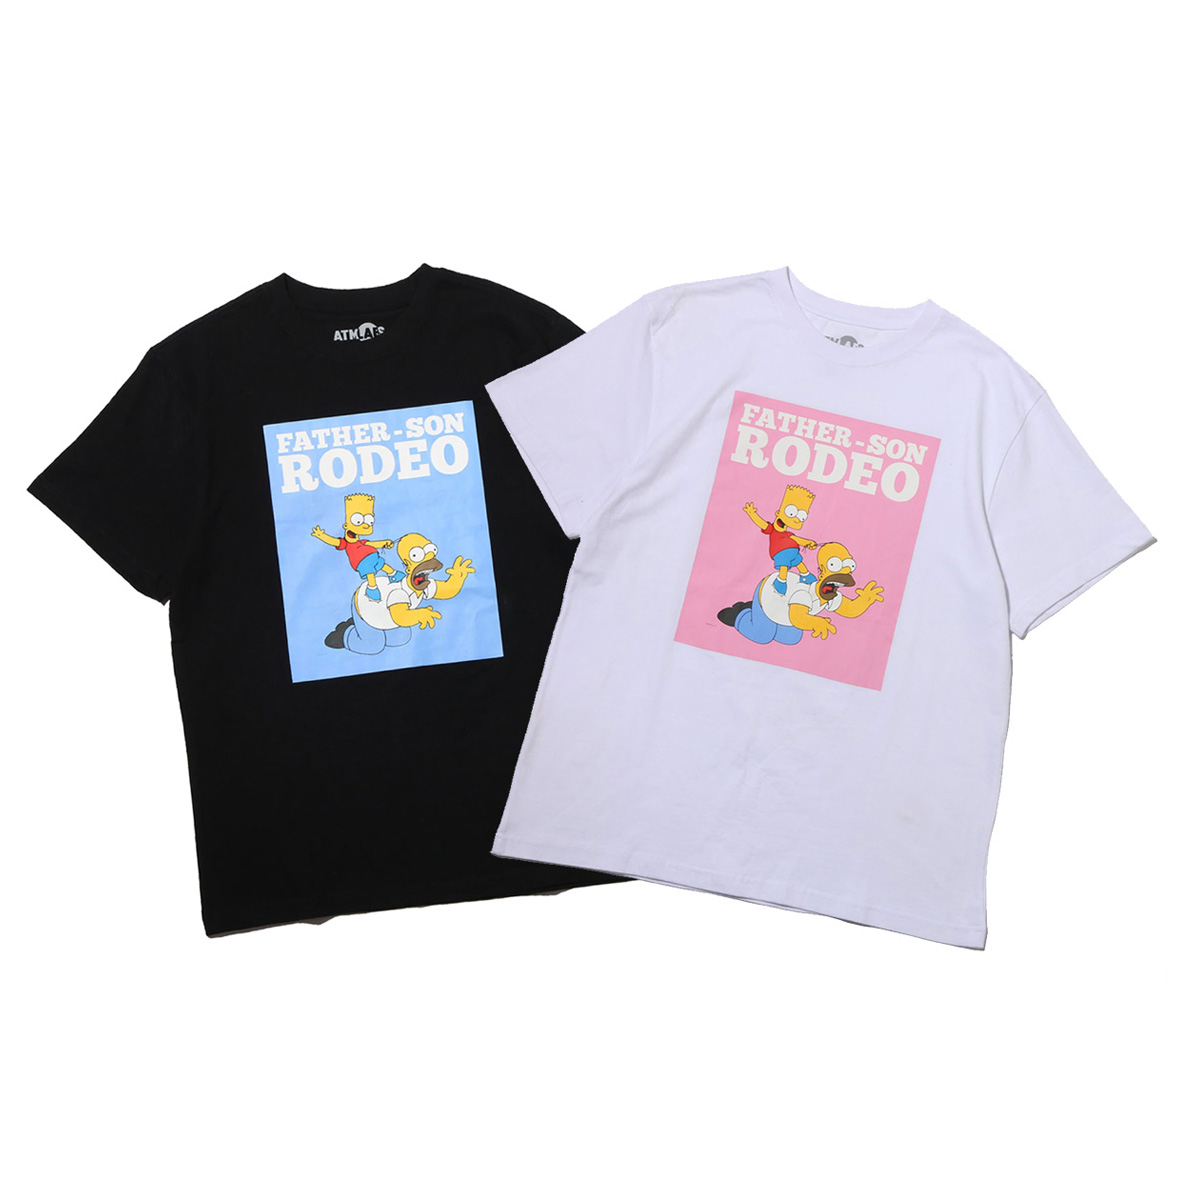 THE SIMPSONS x ATMOS LAB HOMER&BART RODEO TEE